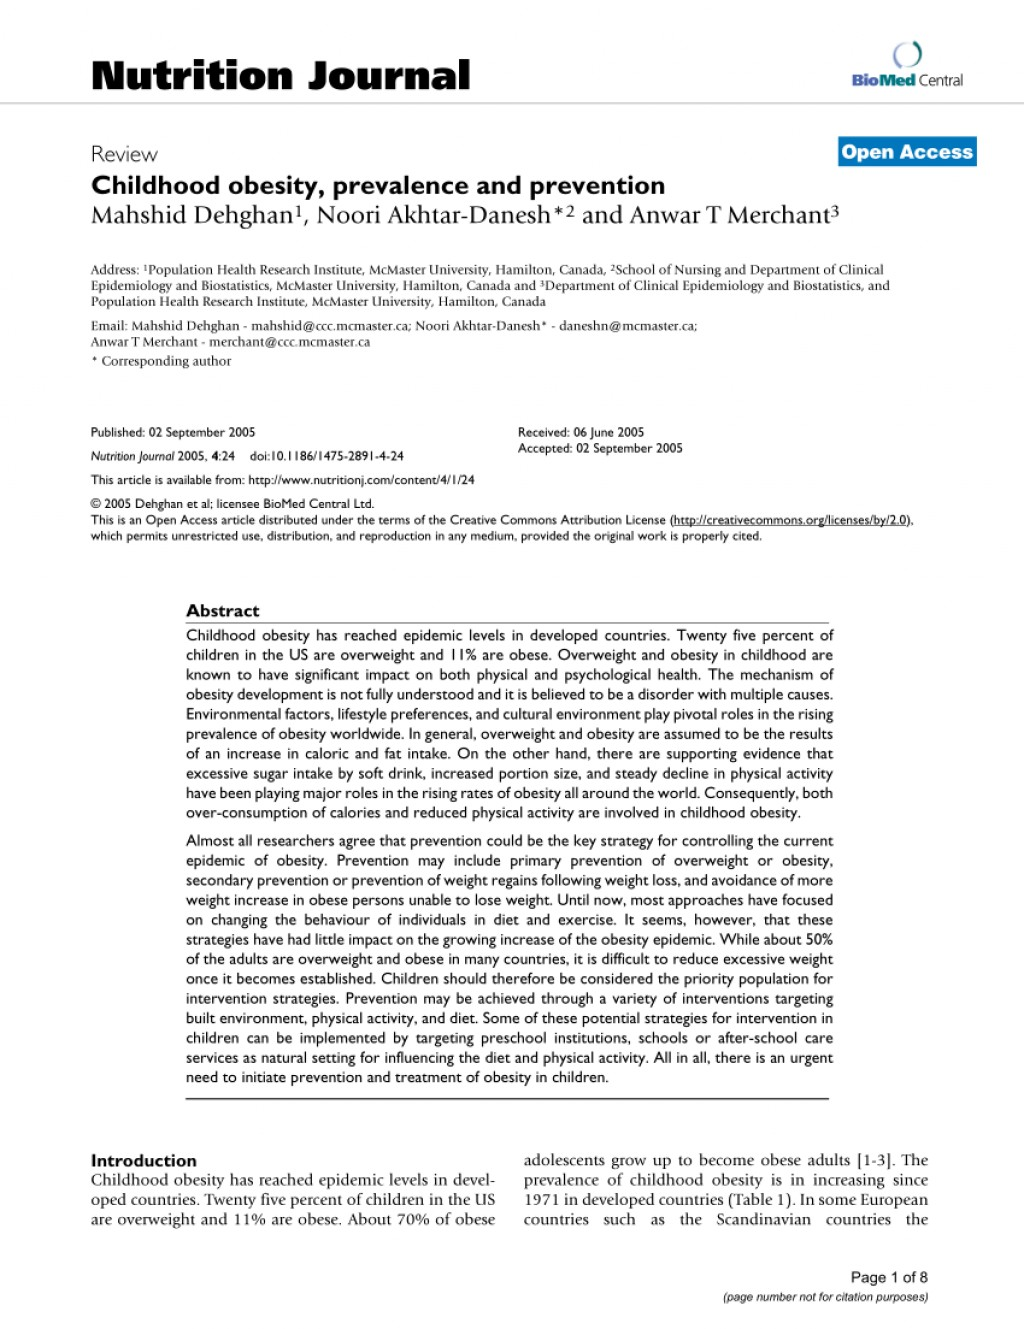 008 Largepreview Nursing Research Articles On Childhood Obesity Stirring Large